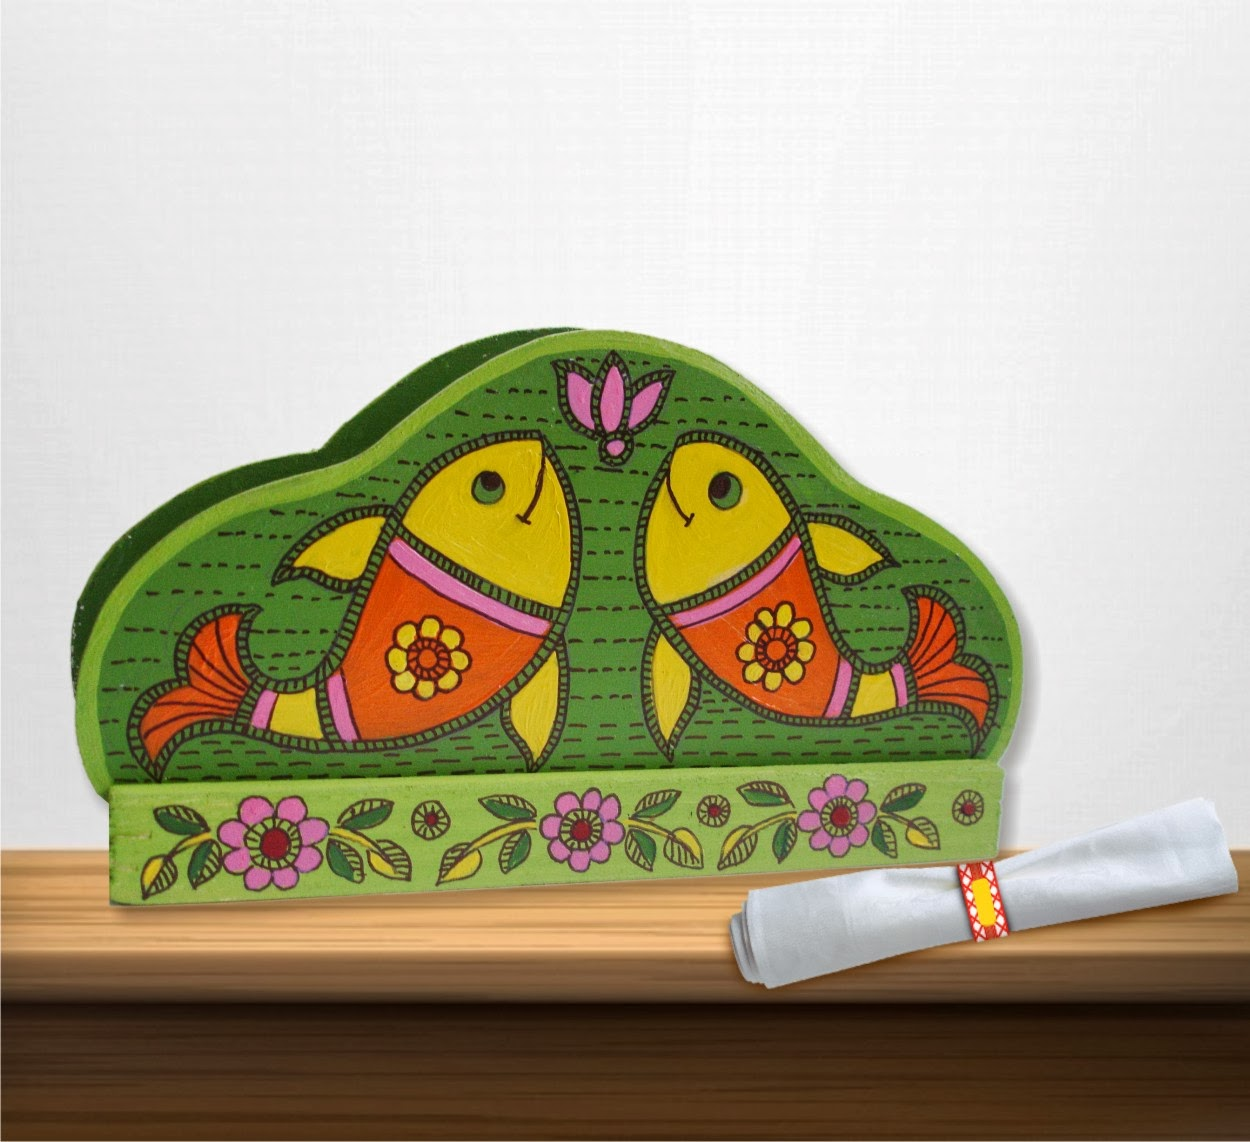 Fantastic do it yourself craft kits by the jaipur craft kit wooden craft kits solutioingenieria Image collections